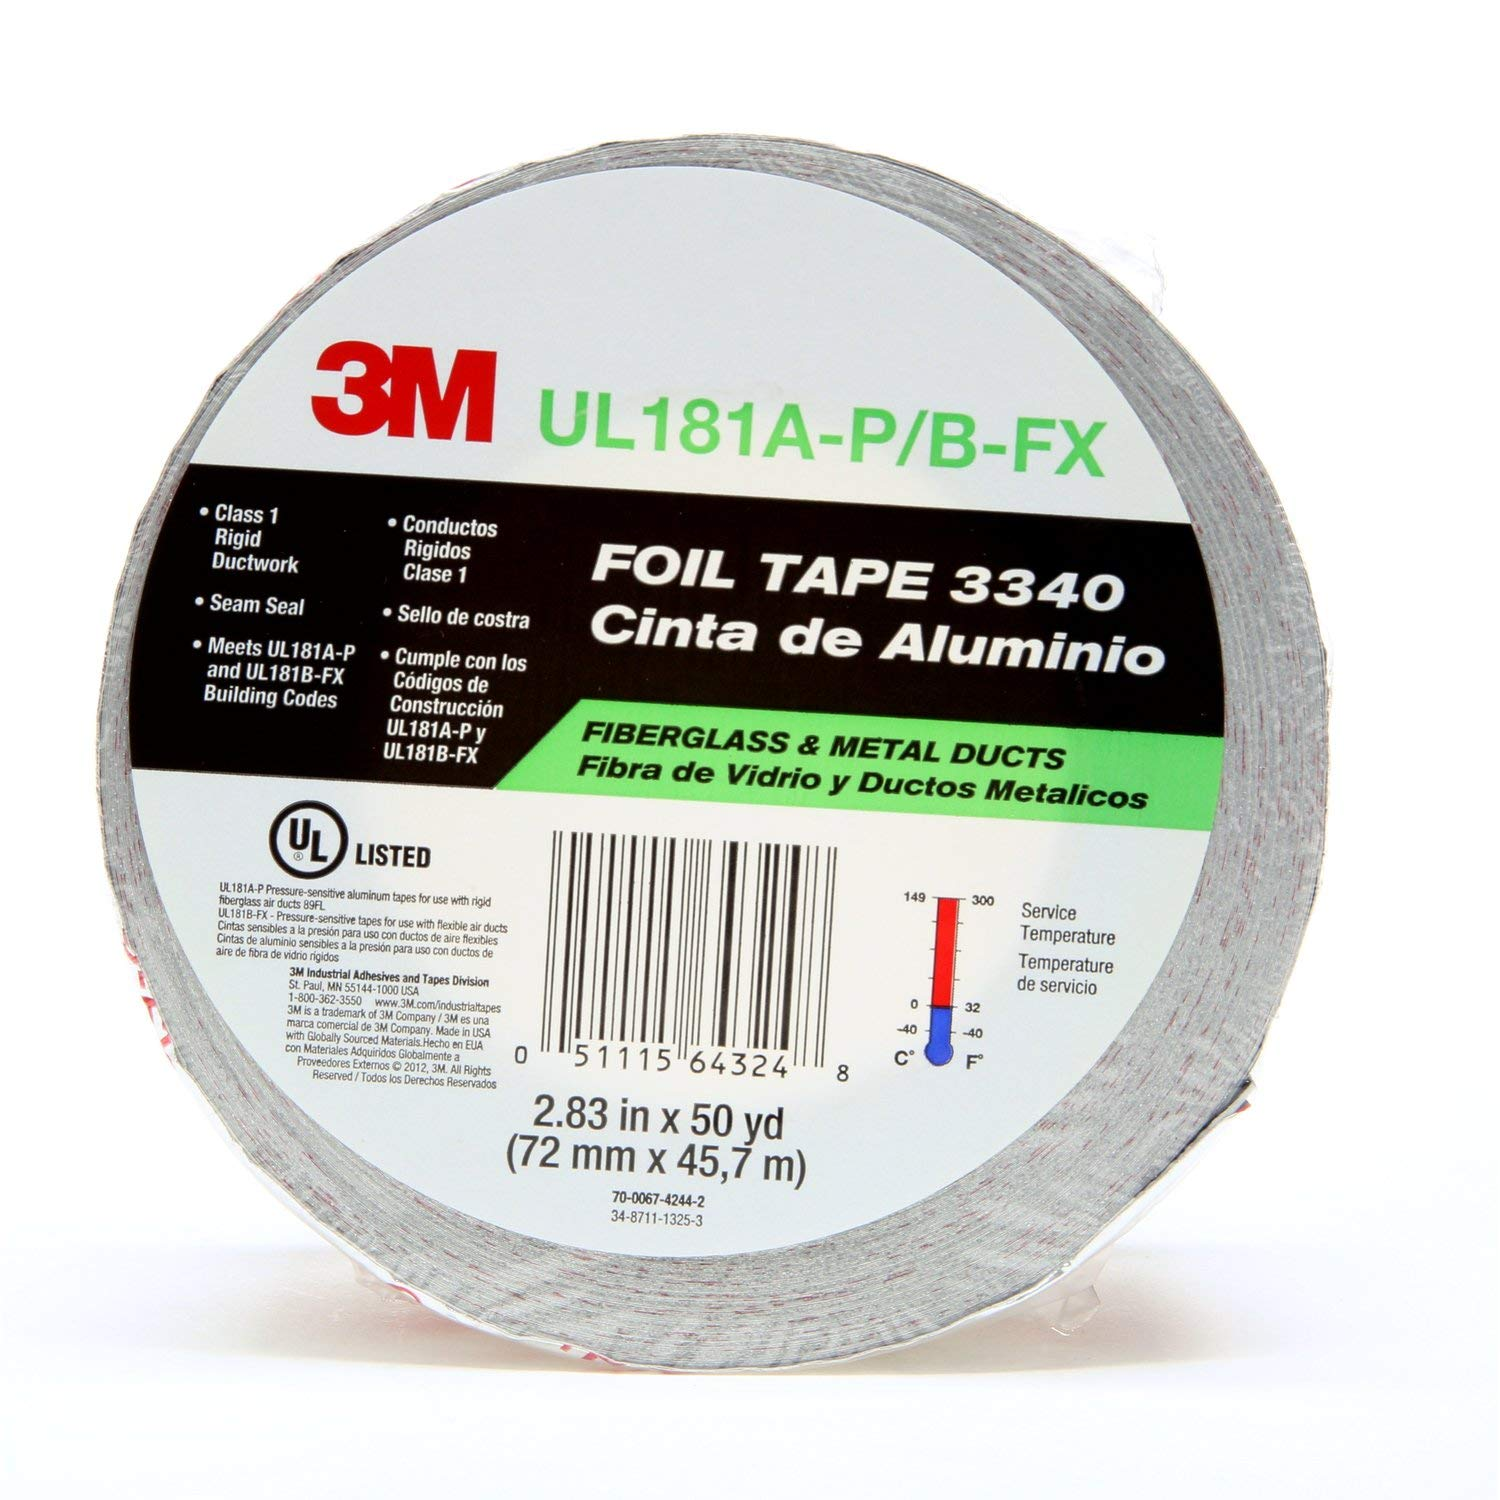 """3M Aluminum Foil Tape 3340, 2.5"""" x 50 yd, 4.0 mil, Silver, HVAC, Sealing and Patching Hot and Cold Air Ducts, Fiberglass Duct Board, Insulation, Metal Repair"""